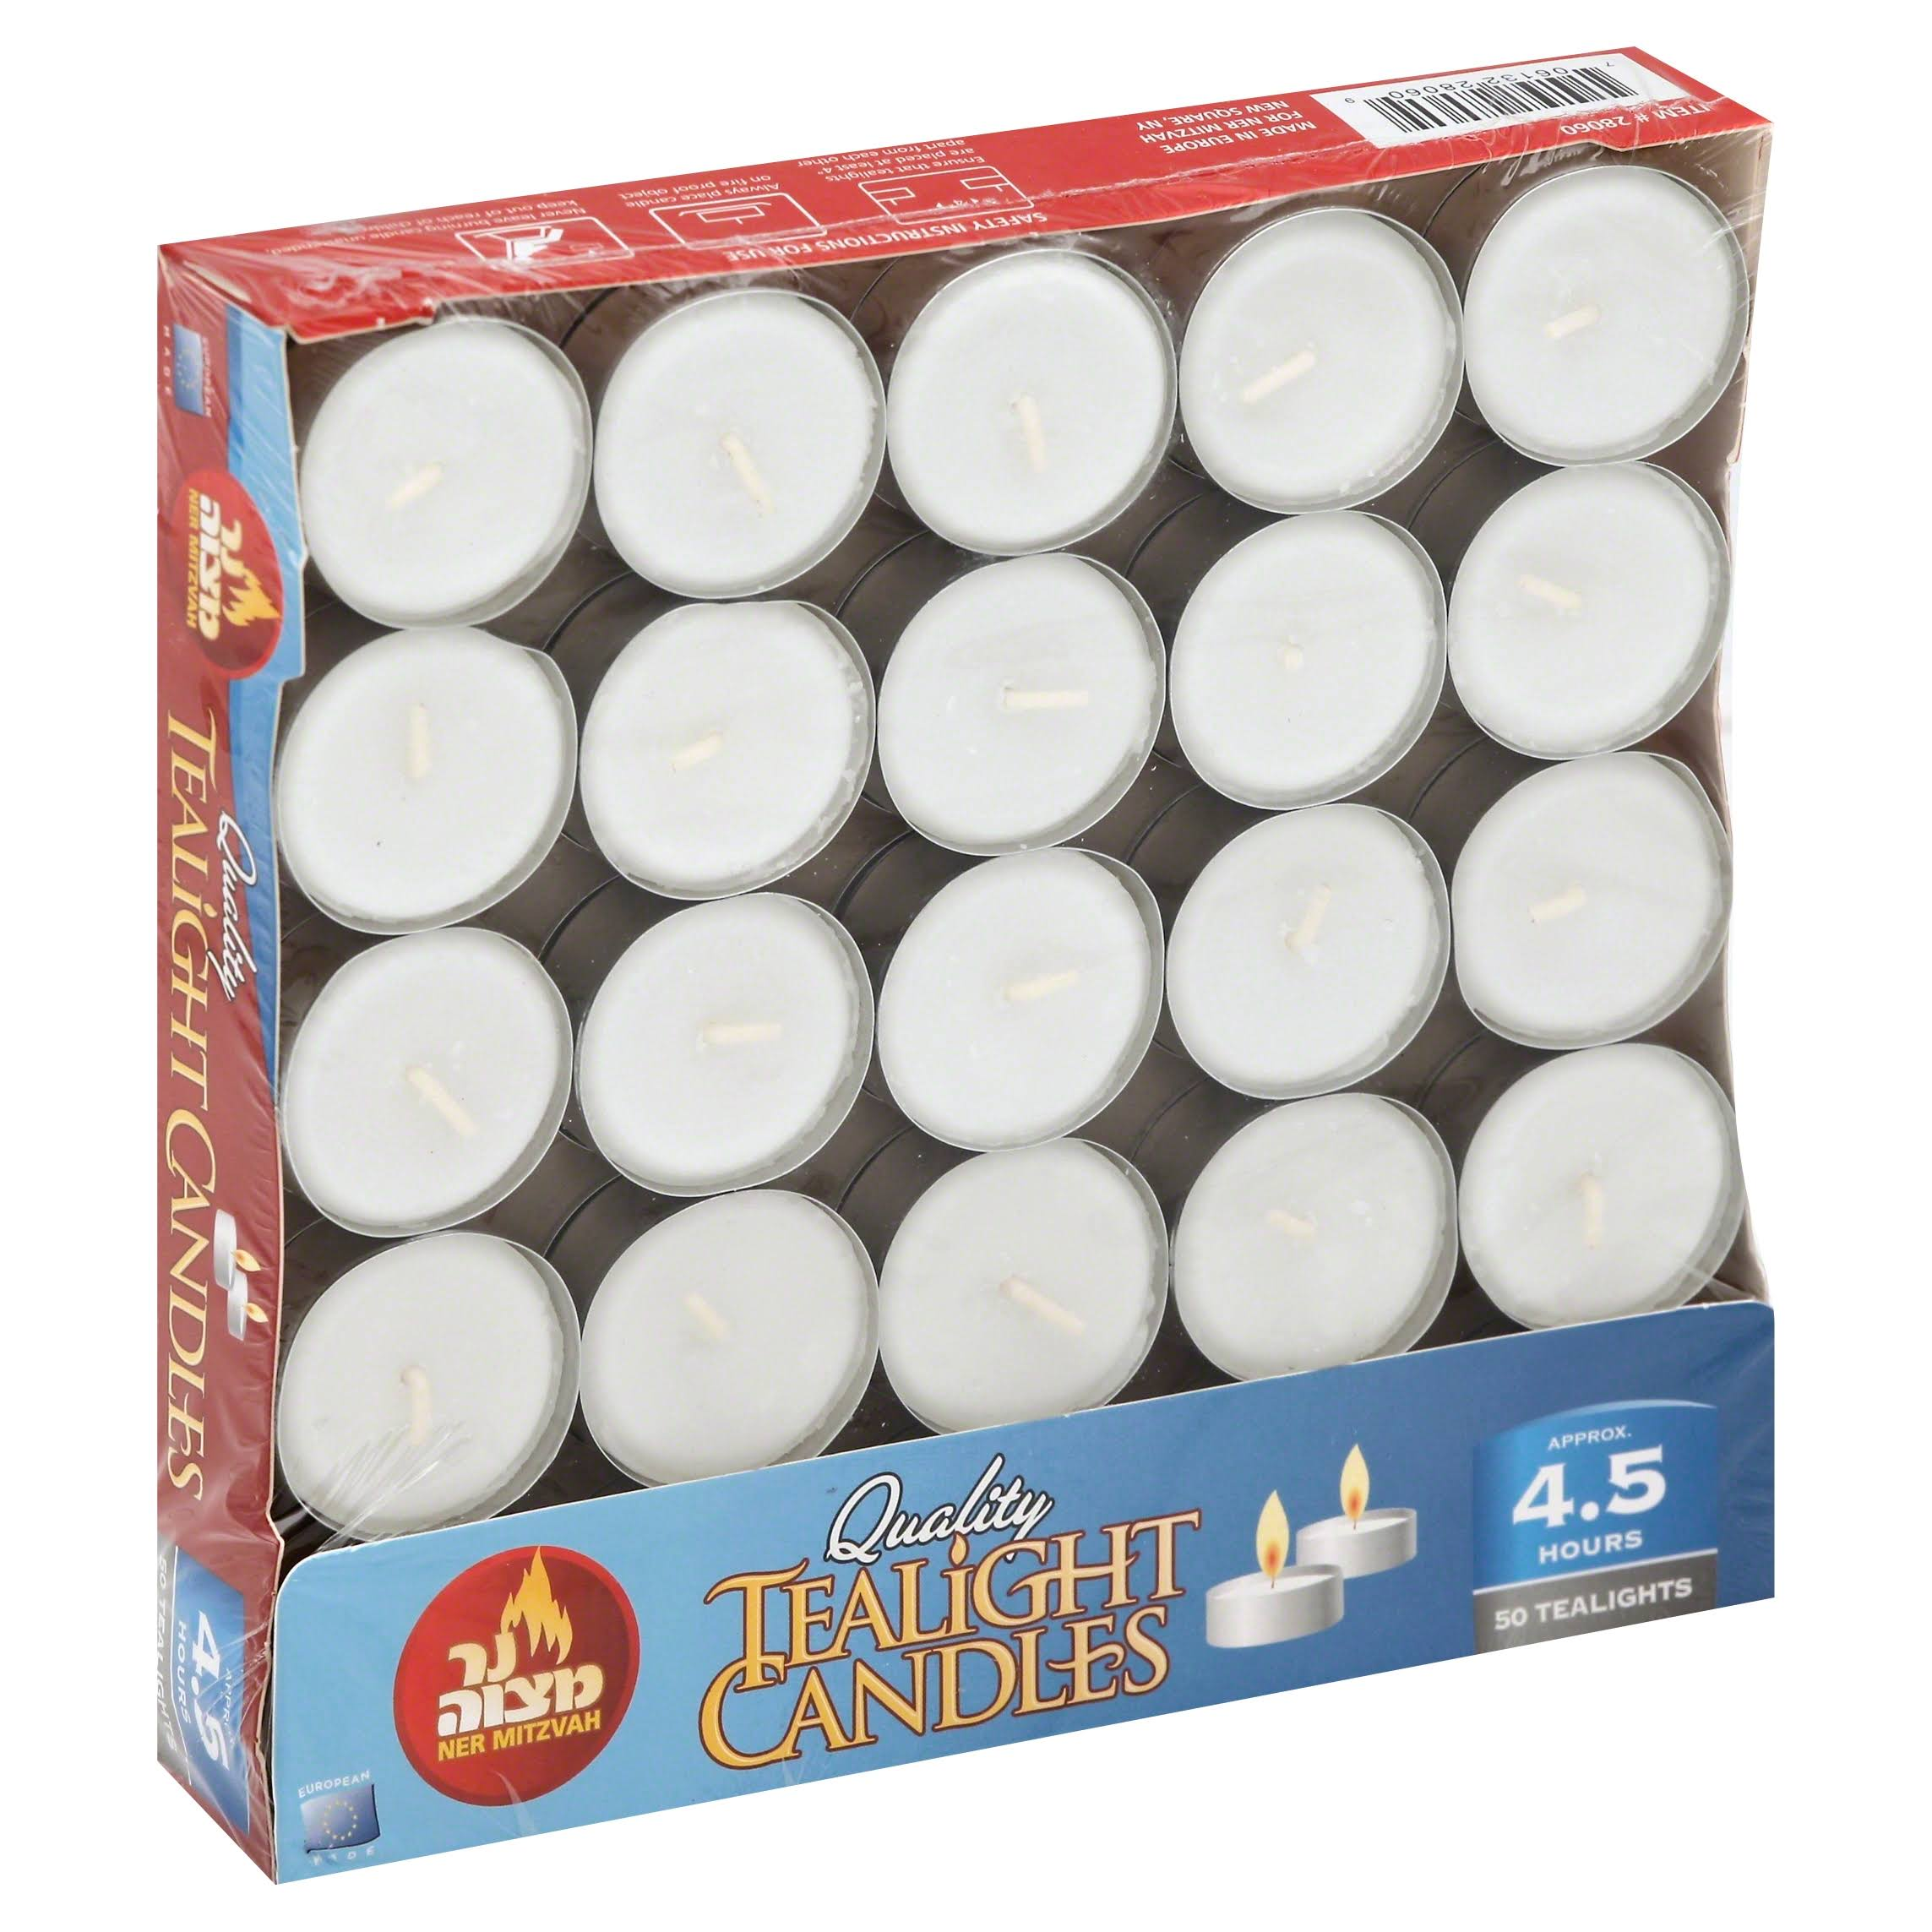 Ner Mitzvah Candles, Quality, Tealight - 50 candles